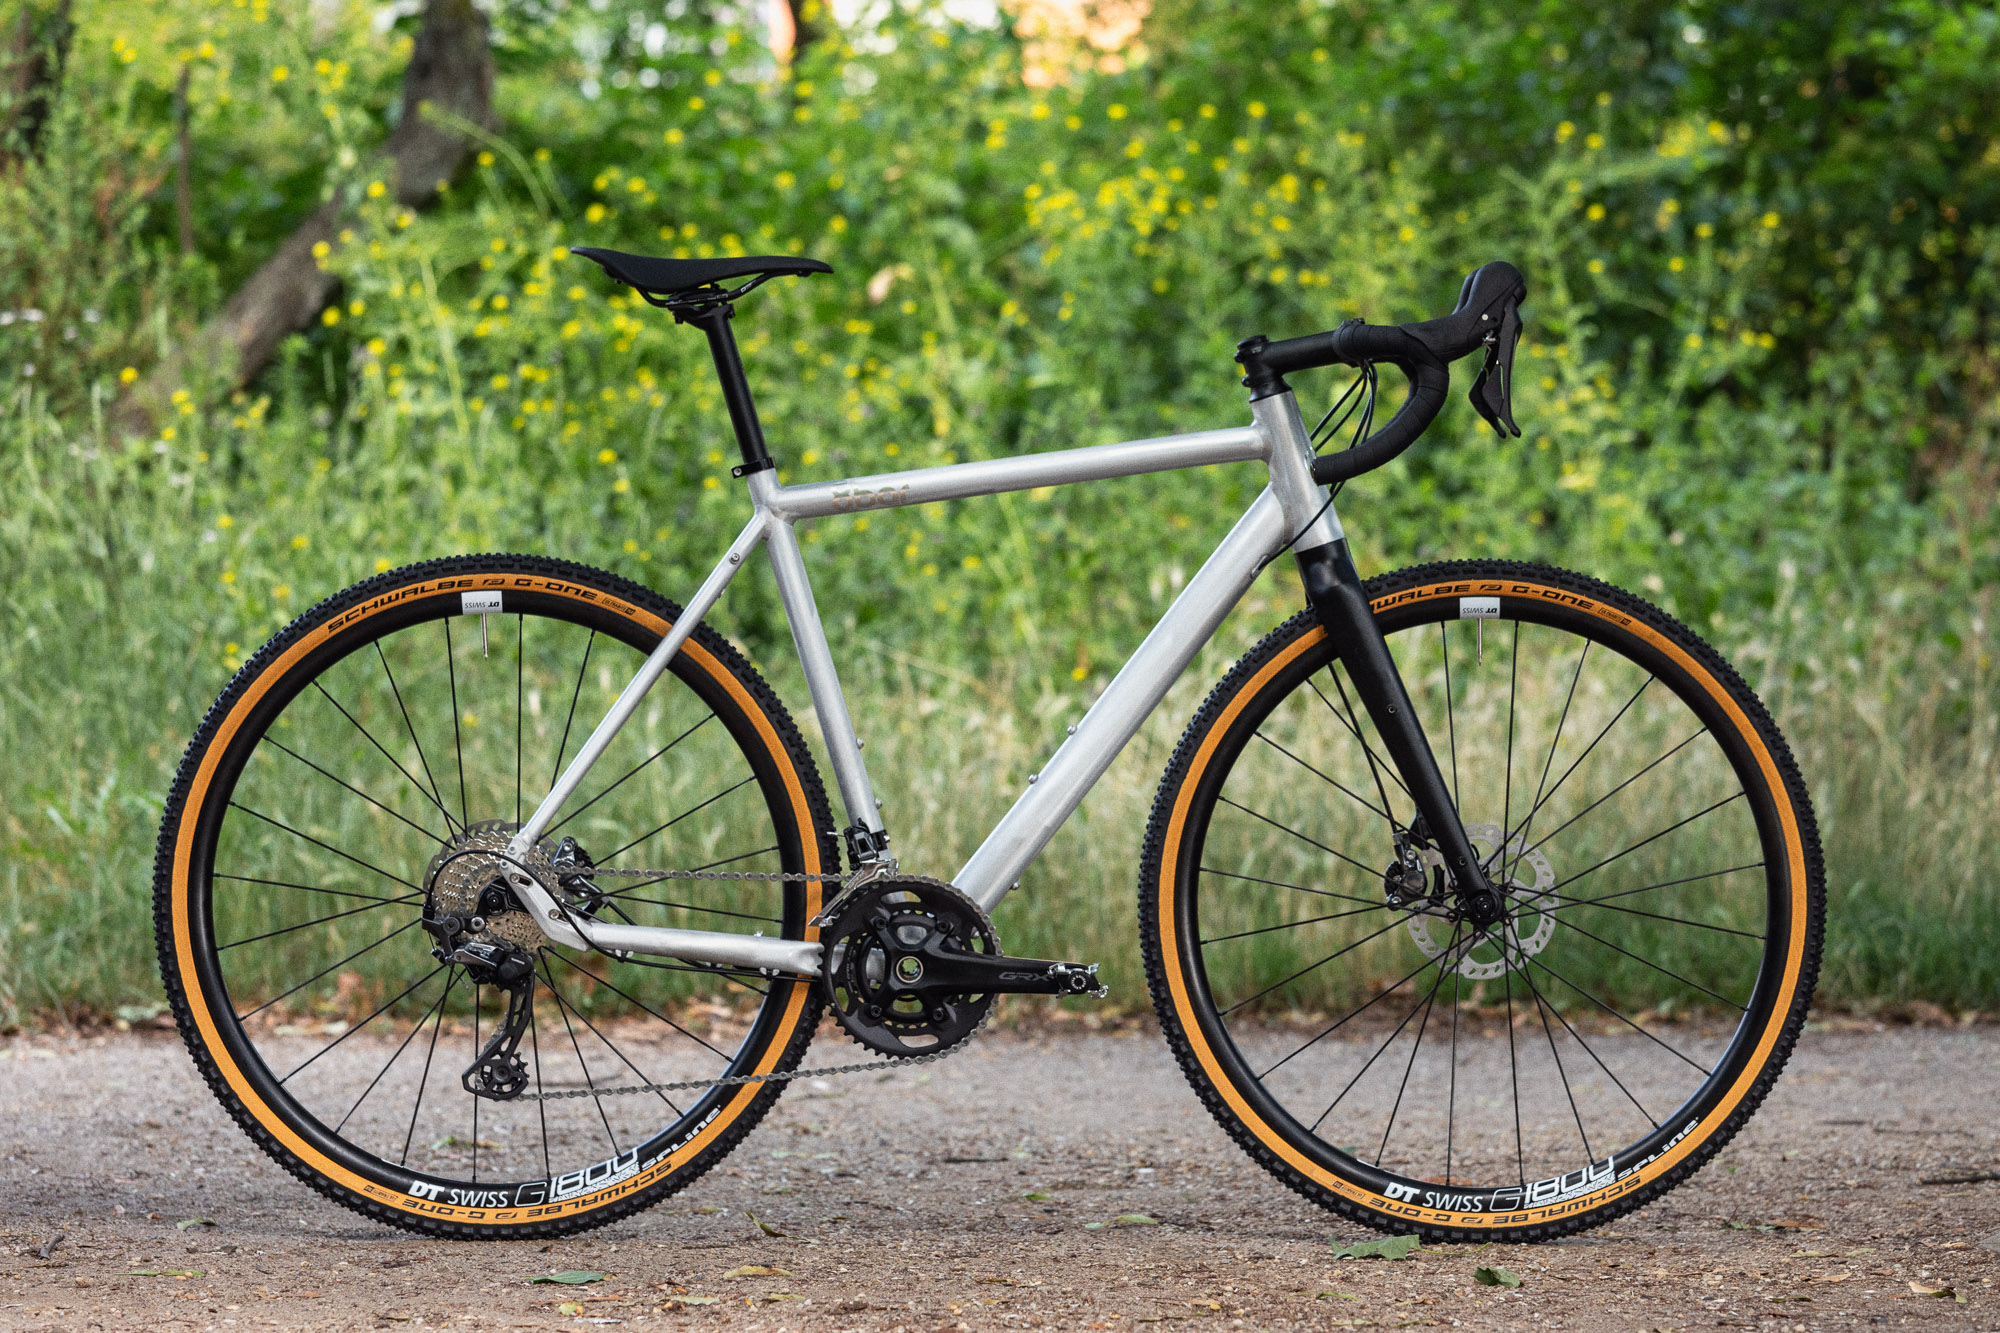 8bar-complete-bike-mitte-raw-gravel-lr-1